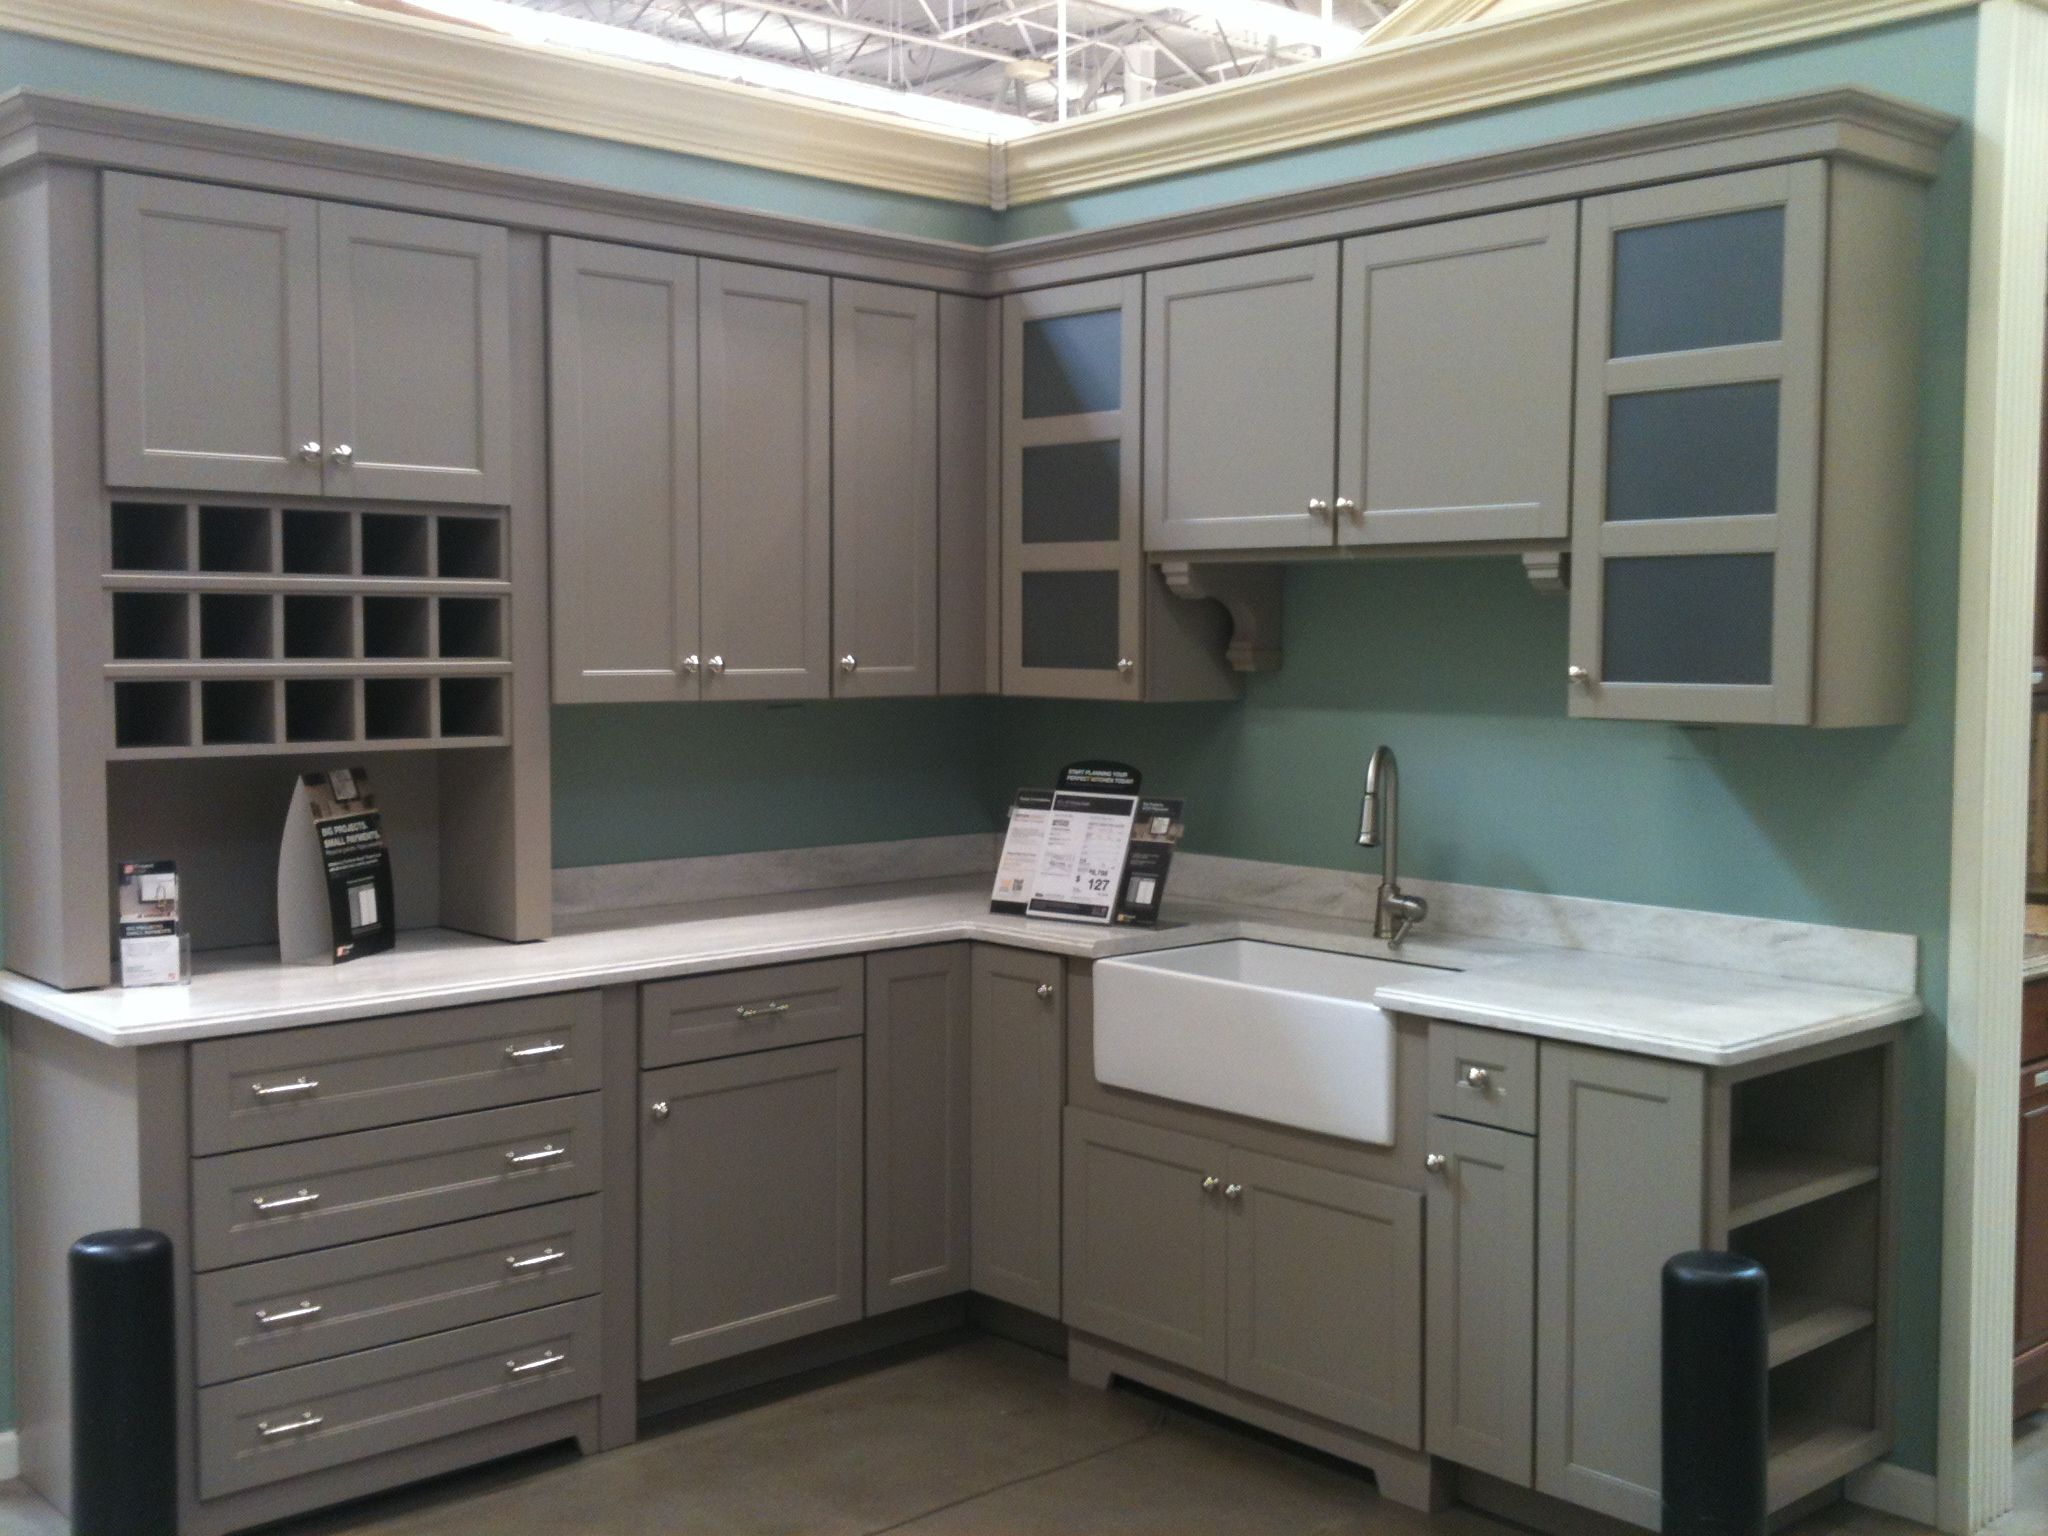 kitchen cabinets home depot Martha Stewart Cabinets from Home Depot Like the shelves on the end